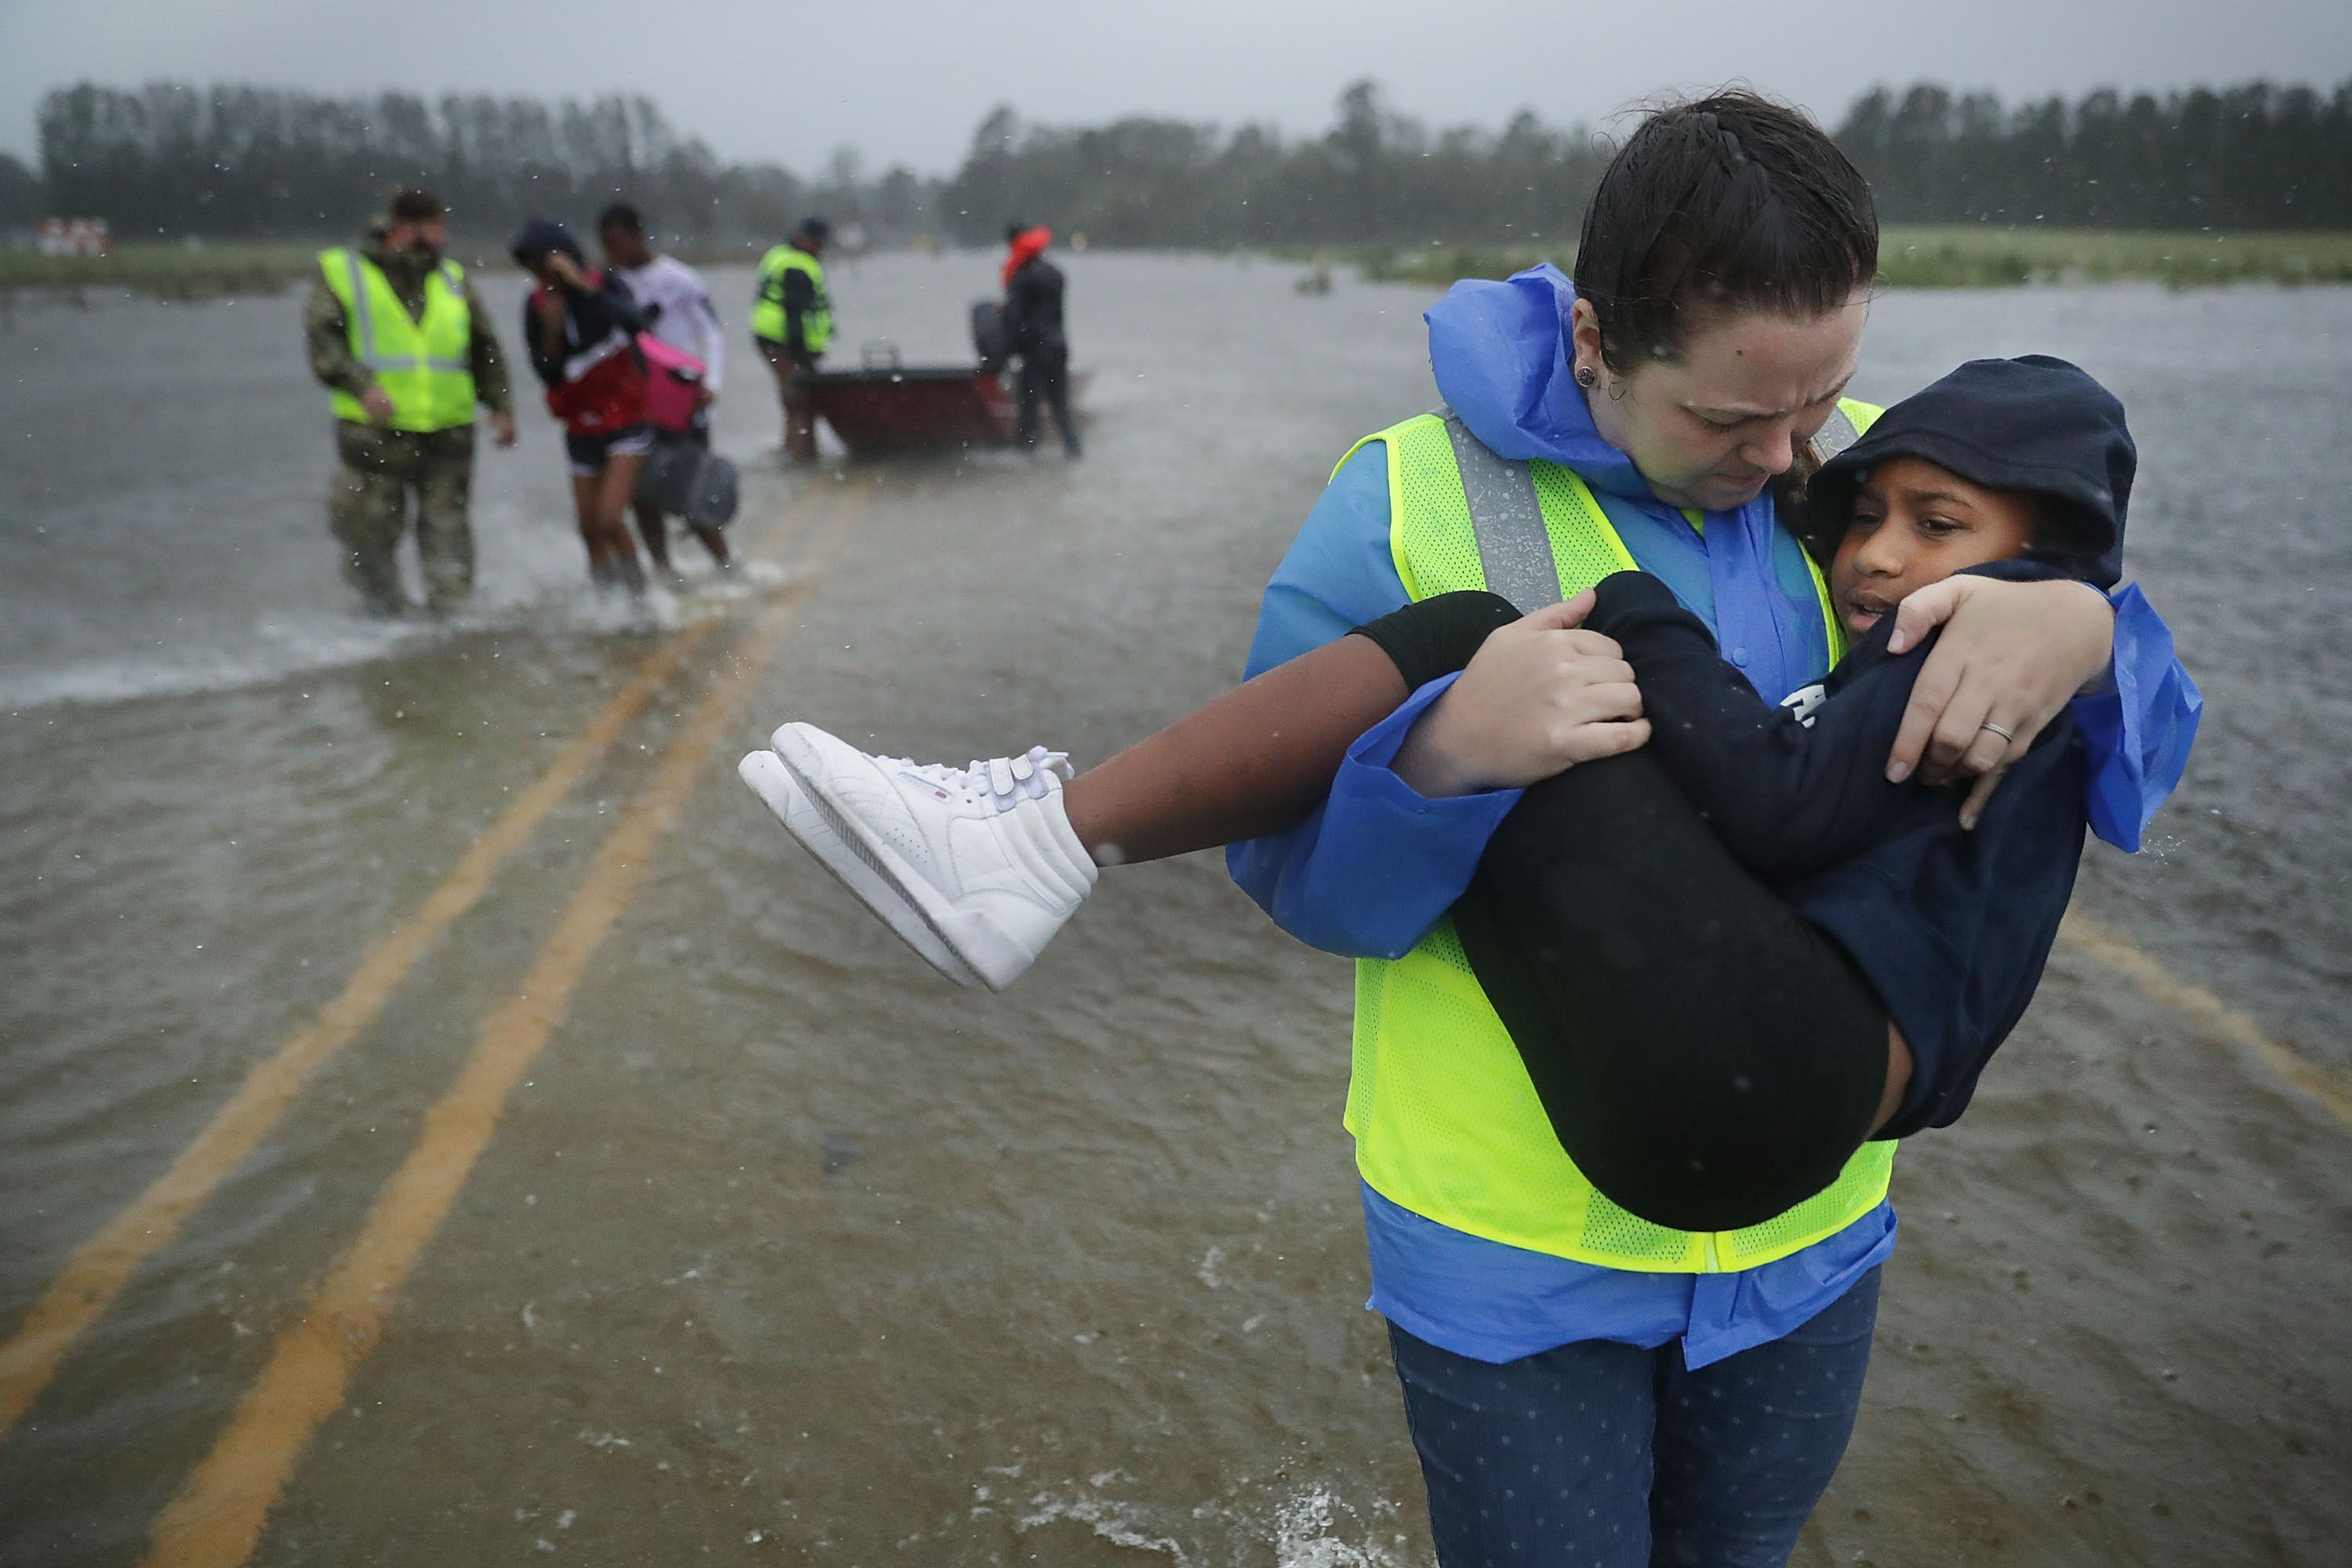 A volunteer carries a child through the water.